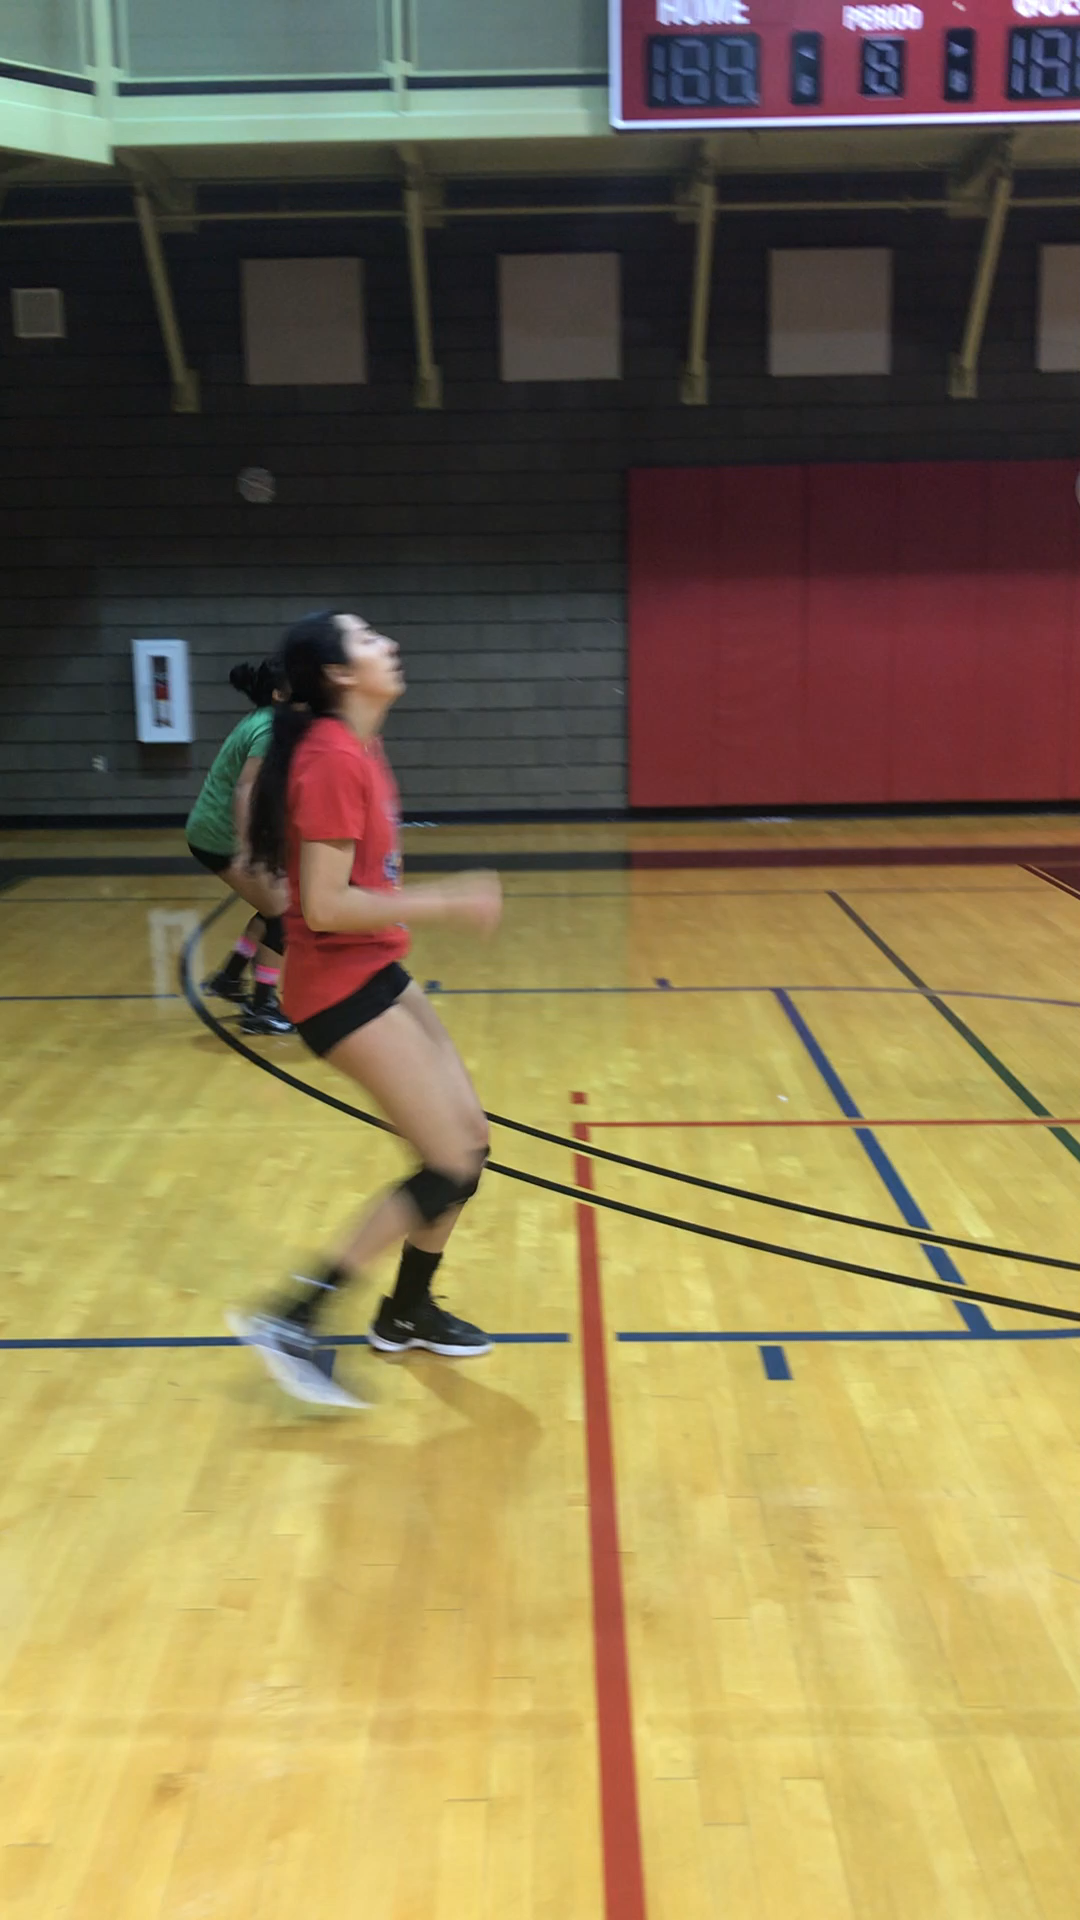 Best Volleyball Matches Volleyball Passing Drills Short And Deep Passing Click The Link B In 2020 Volleyball Passing Drills Volleyball Tryouts Volleyball Practice